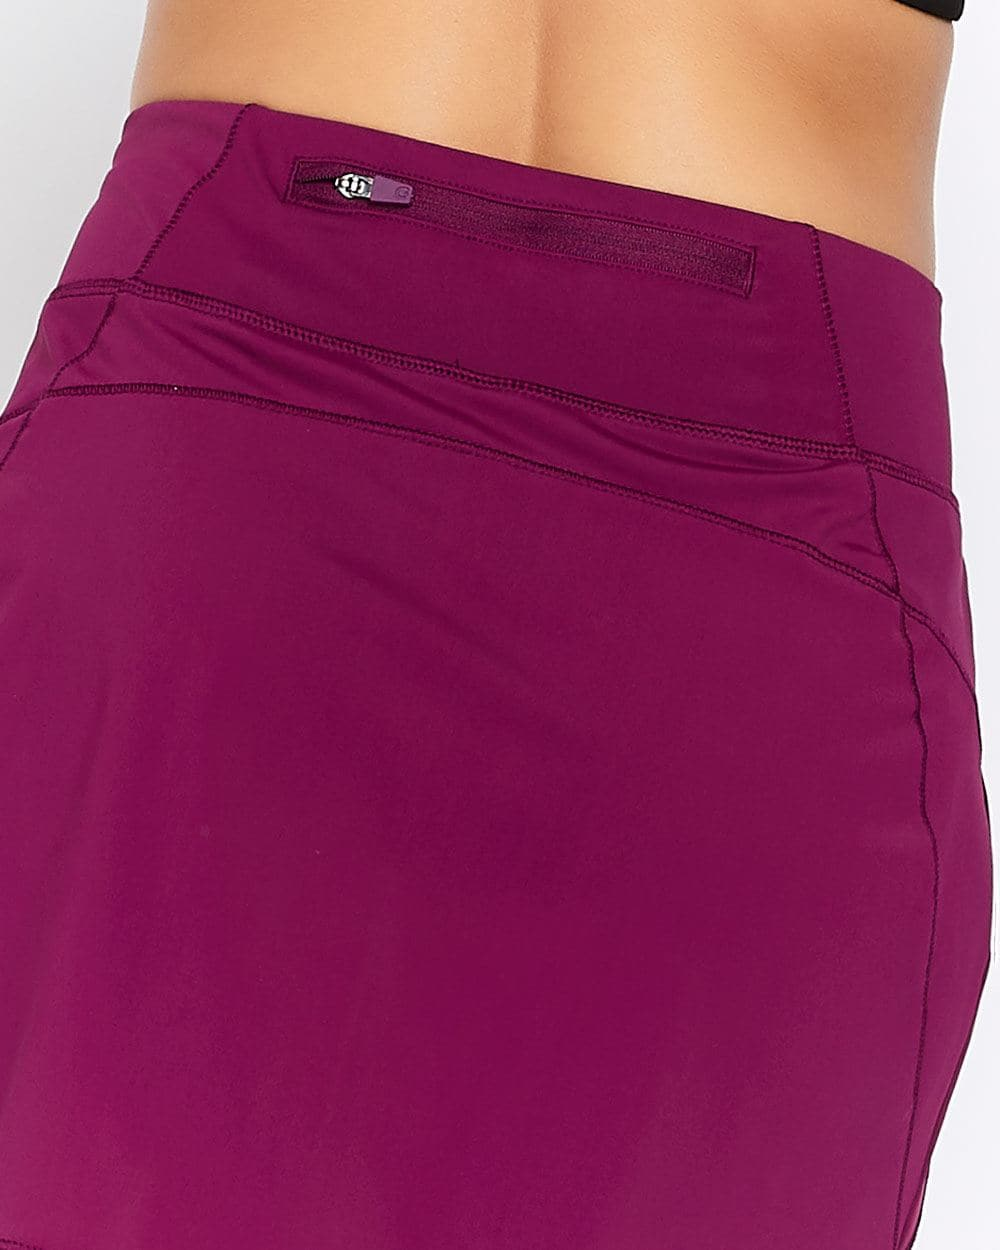 Hyba Athletic Skort